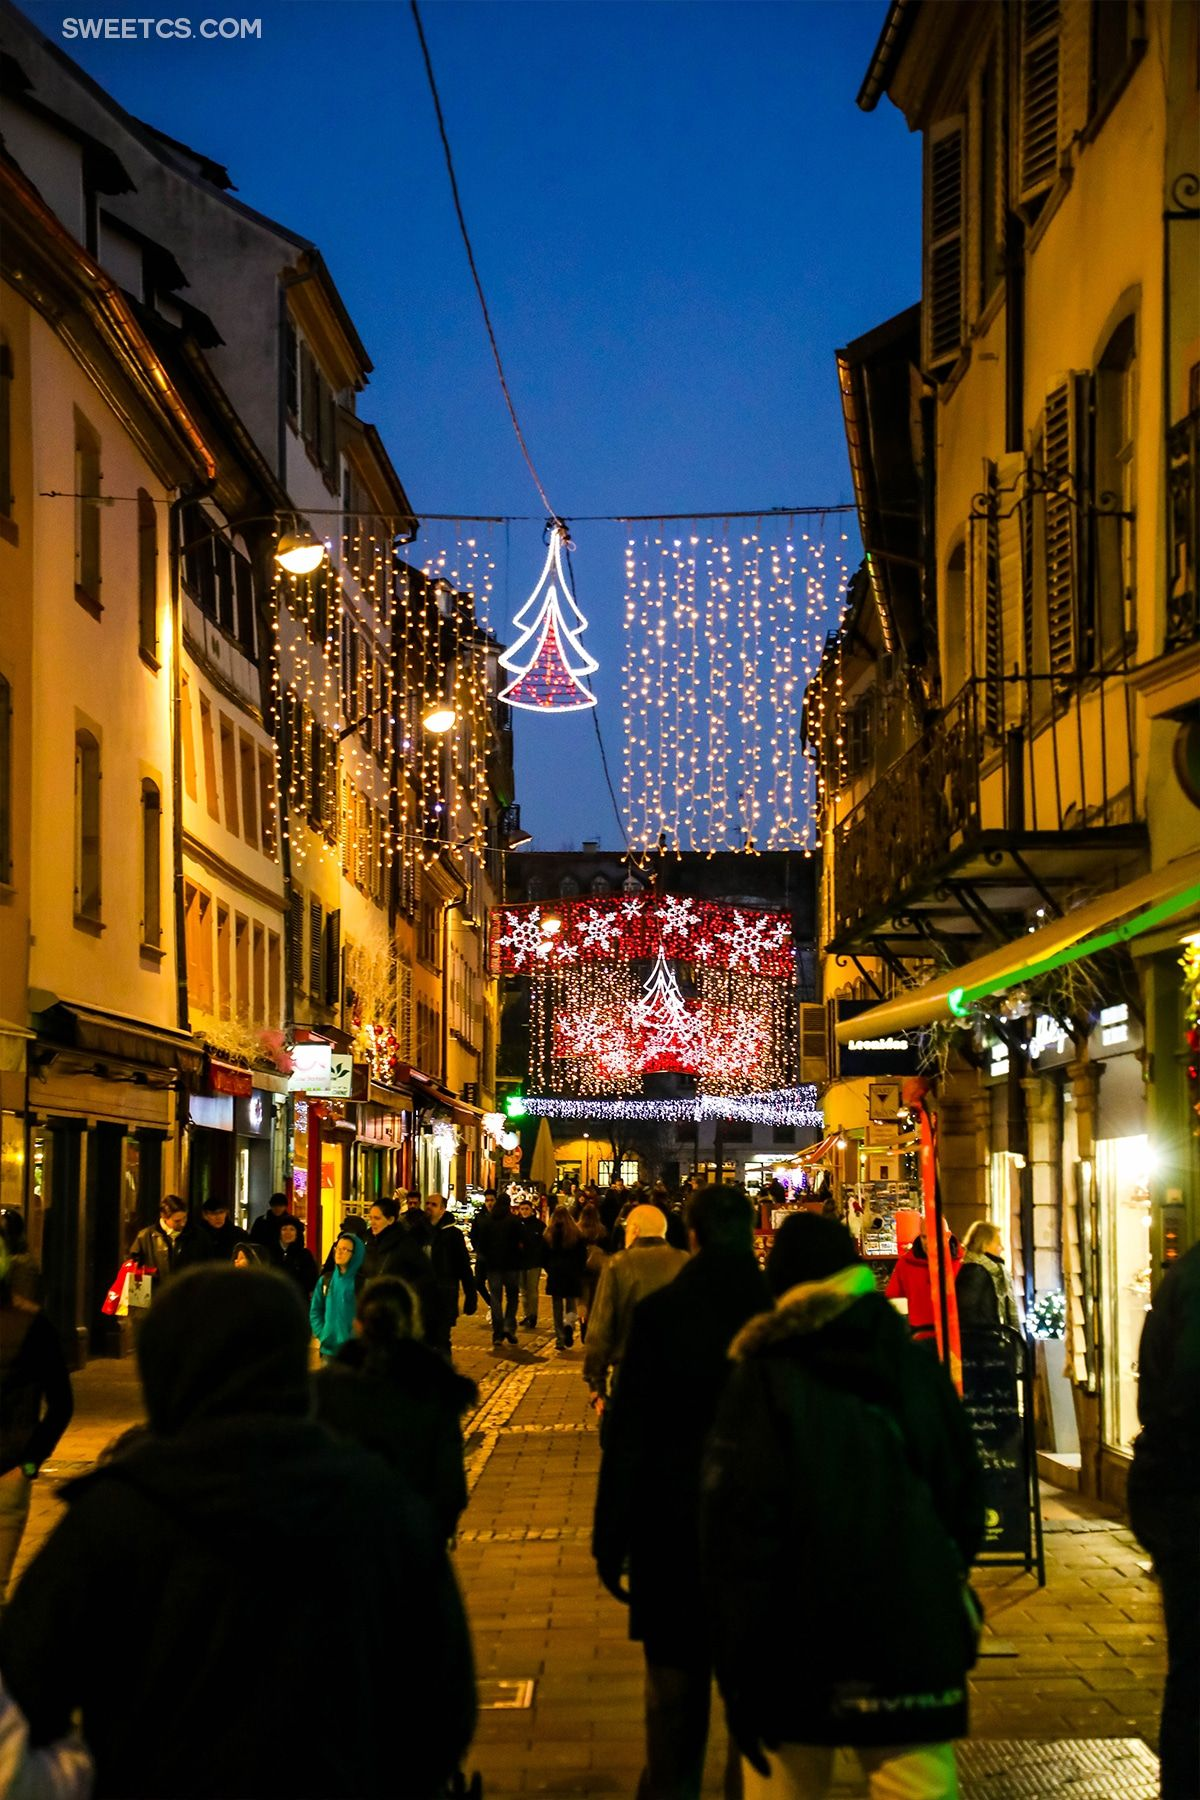 Christmas Day In France.A Christmas Day Trip To Strasbourg France Sweet C S